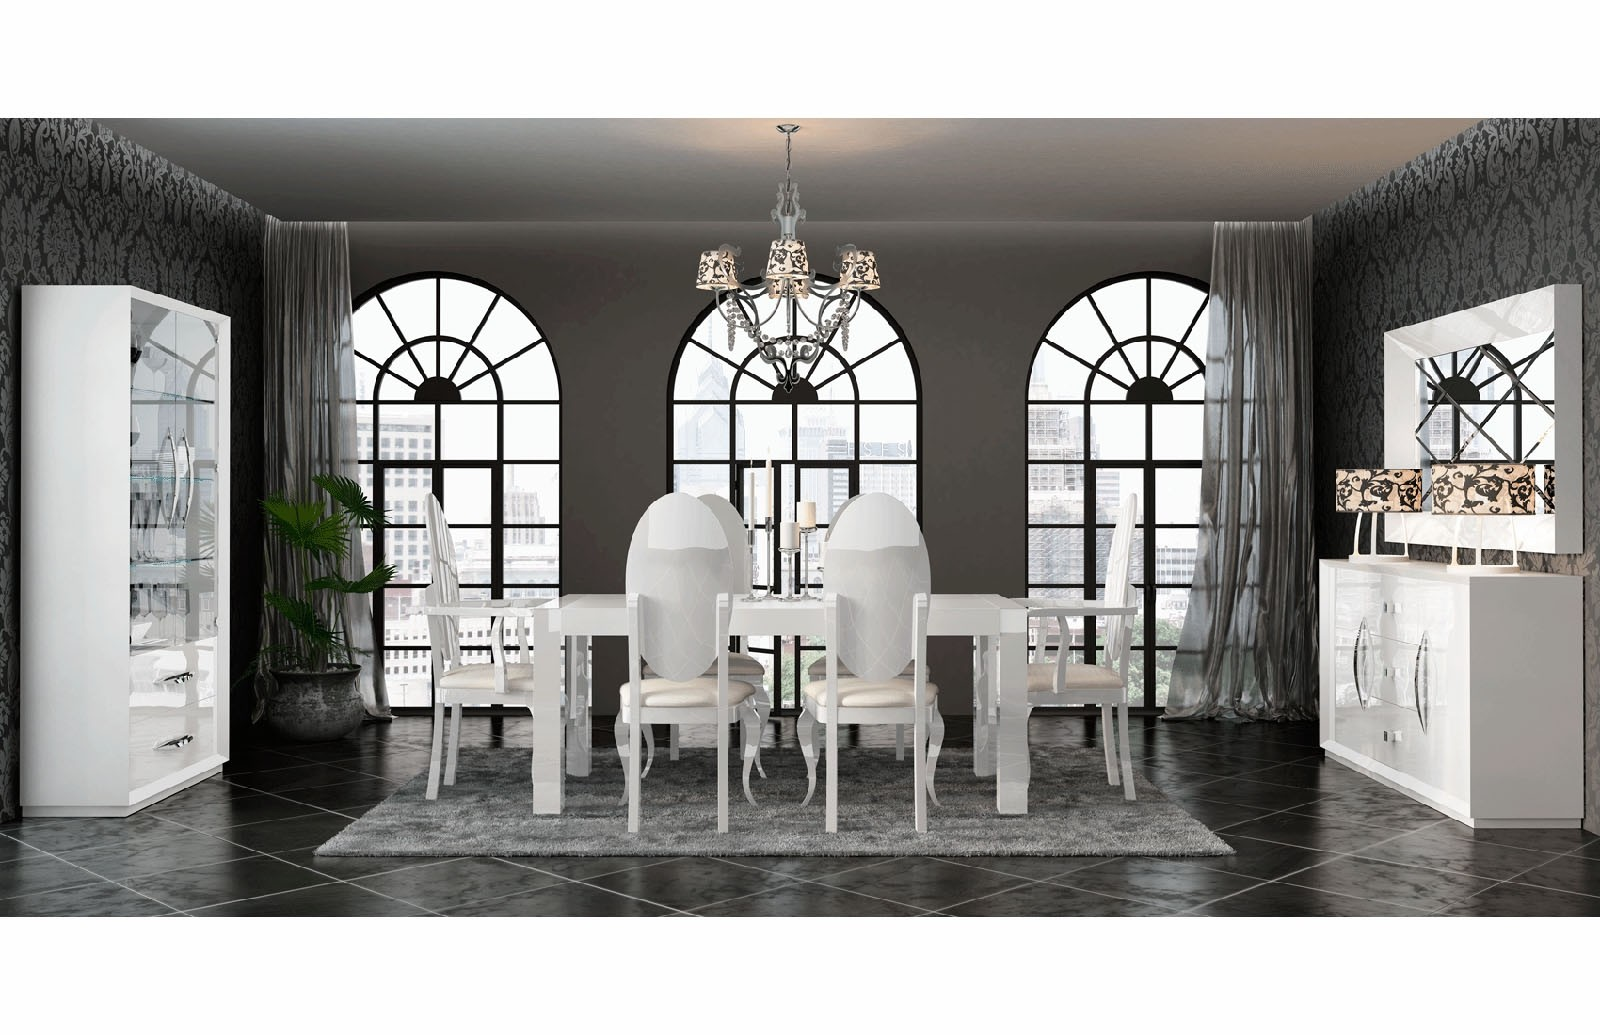 D313 Modern Dining Room Set In White Lacquer Finish: ESF Carmen Dining Room Set In White Lacquer Finish